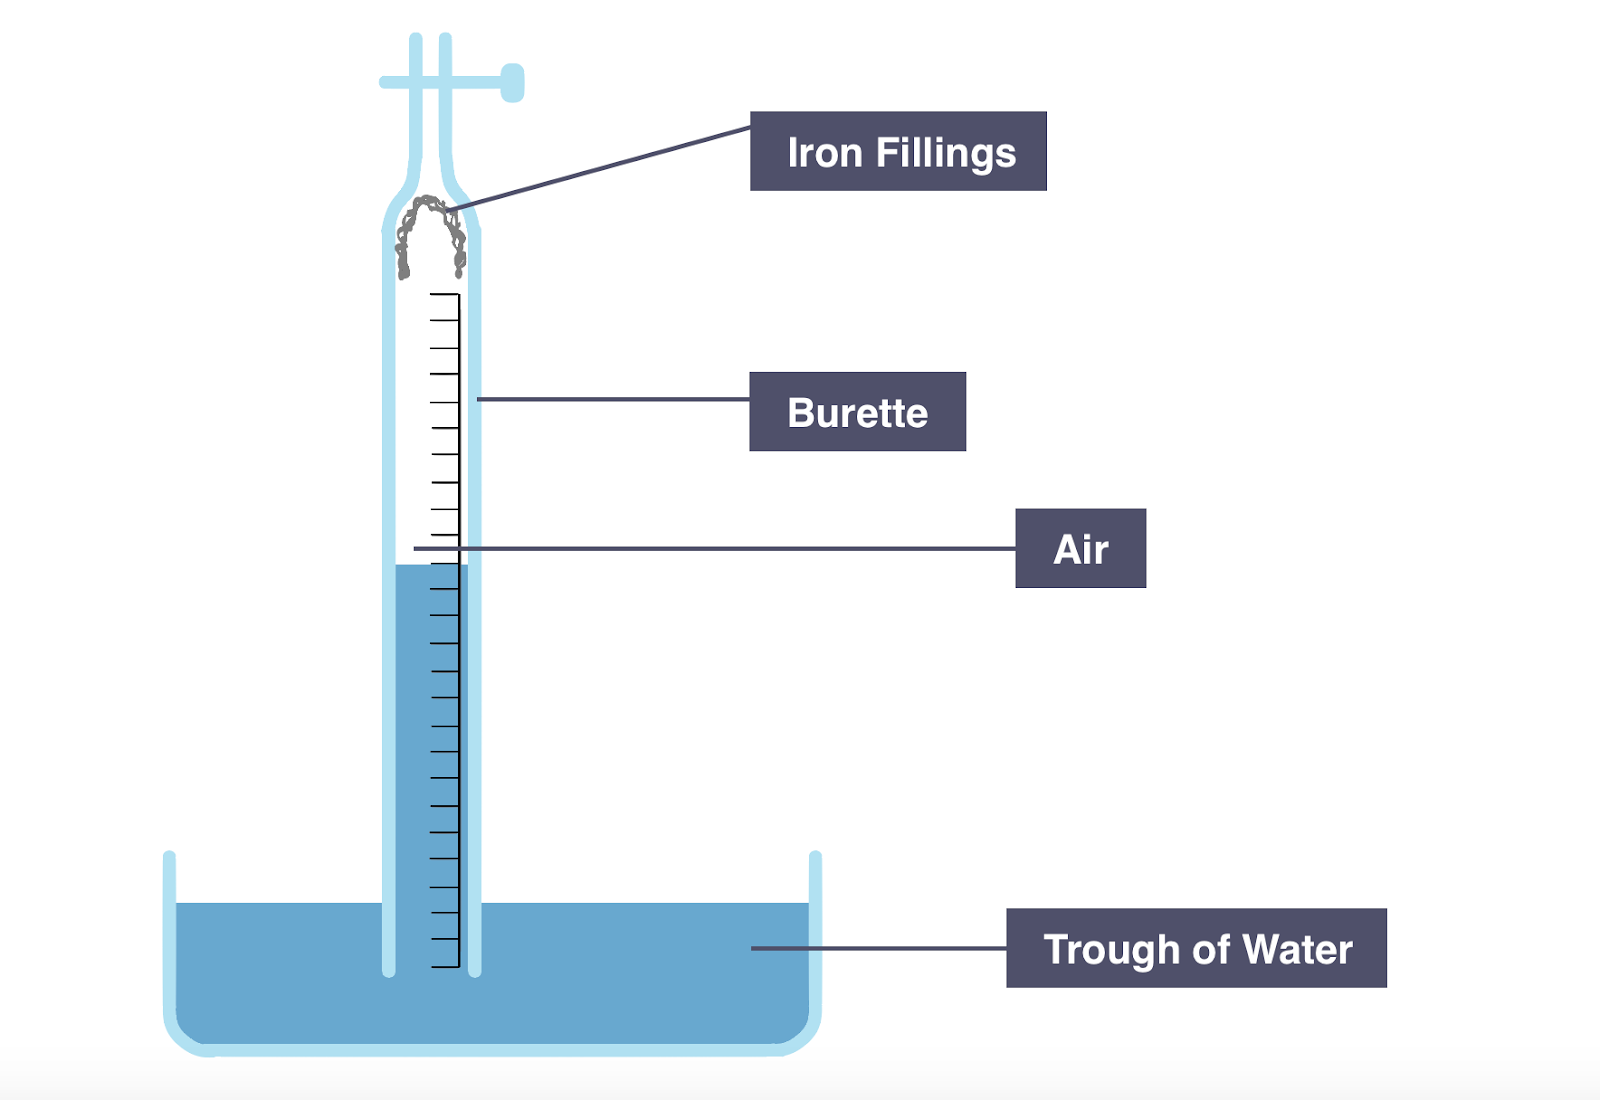 Igcse chemistry 2017 210 understand how to determine the diagram showing the use of iron to calculate percentage volume of oxygen in air pooptronica Images